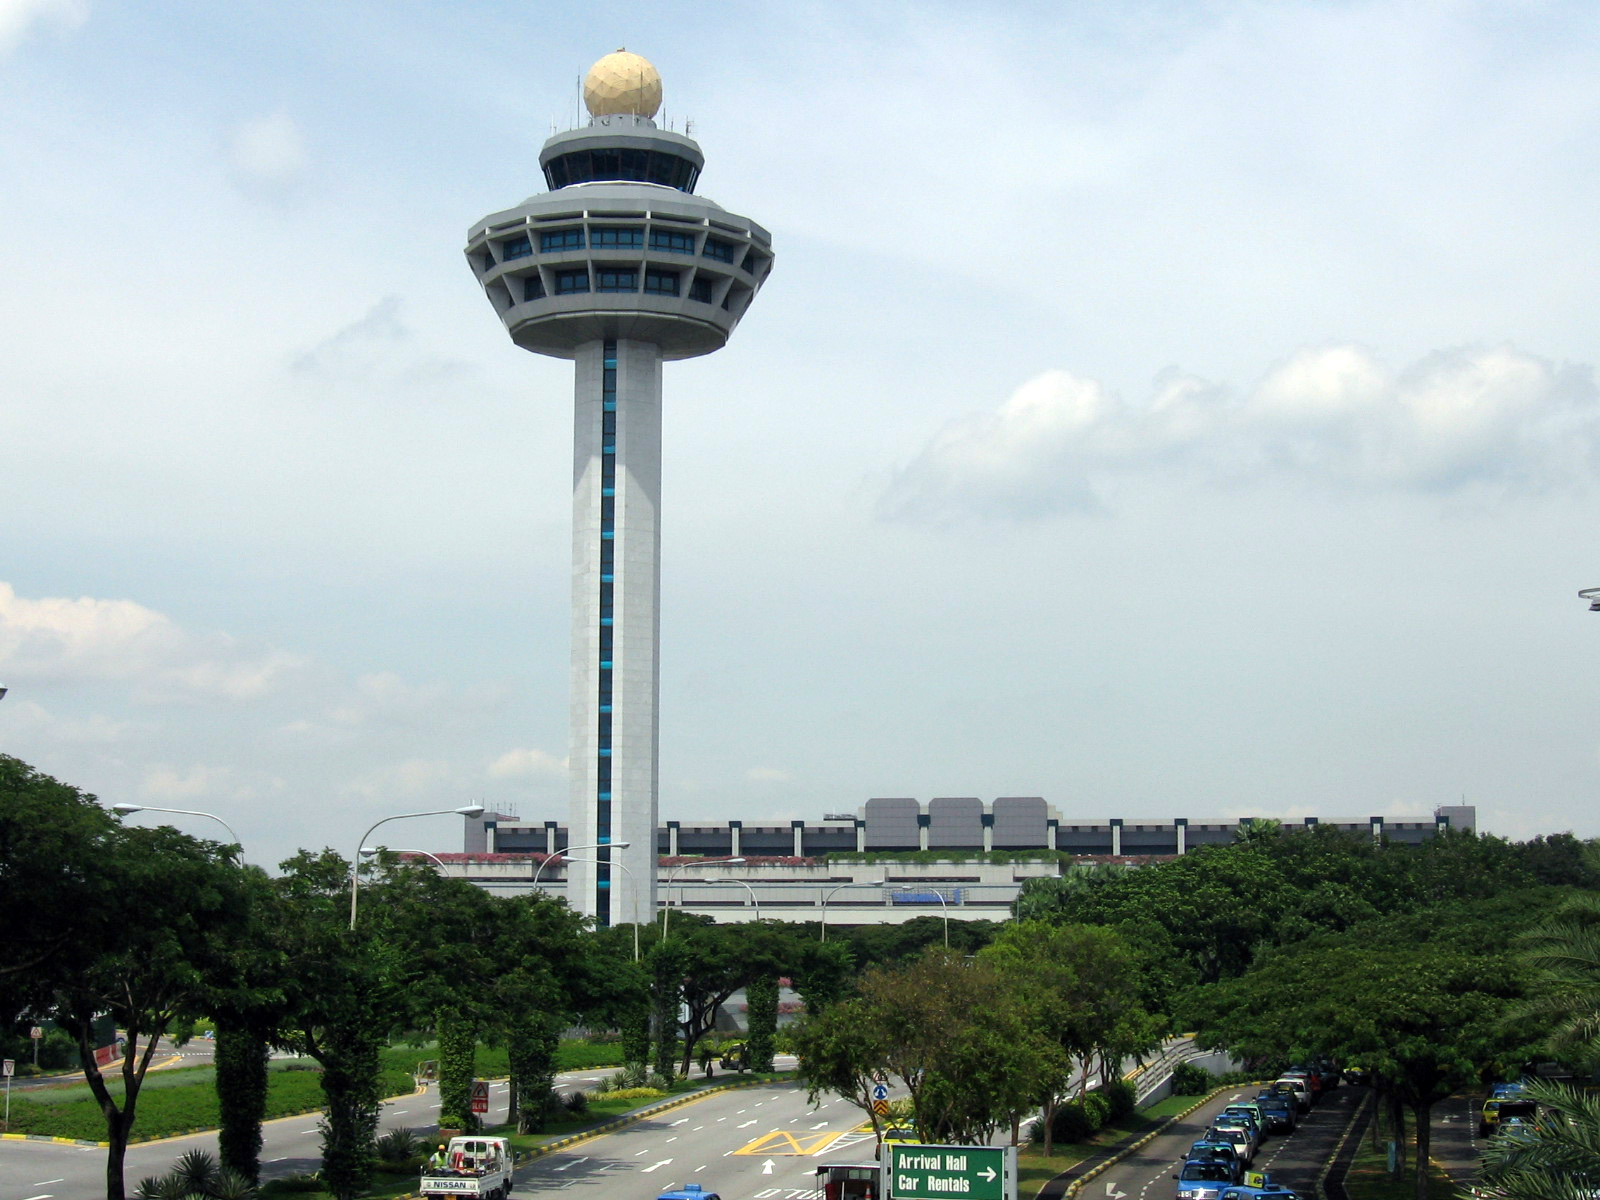 File:Singapore Changi Airport, Control Tower 2, Dec 05.JPG - Wikipedia